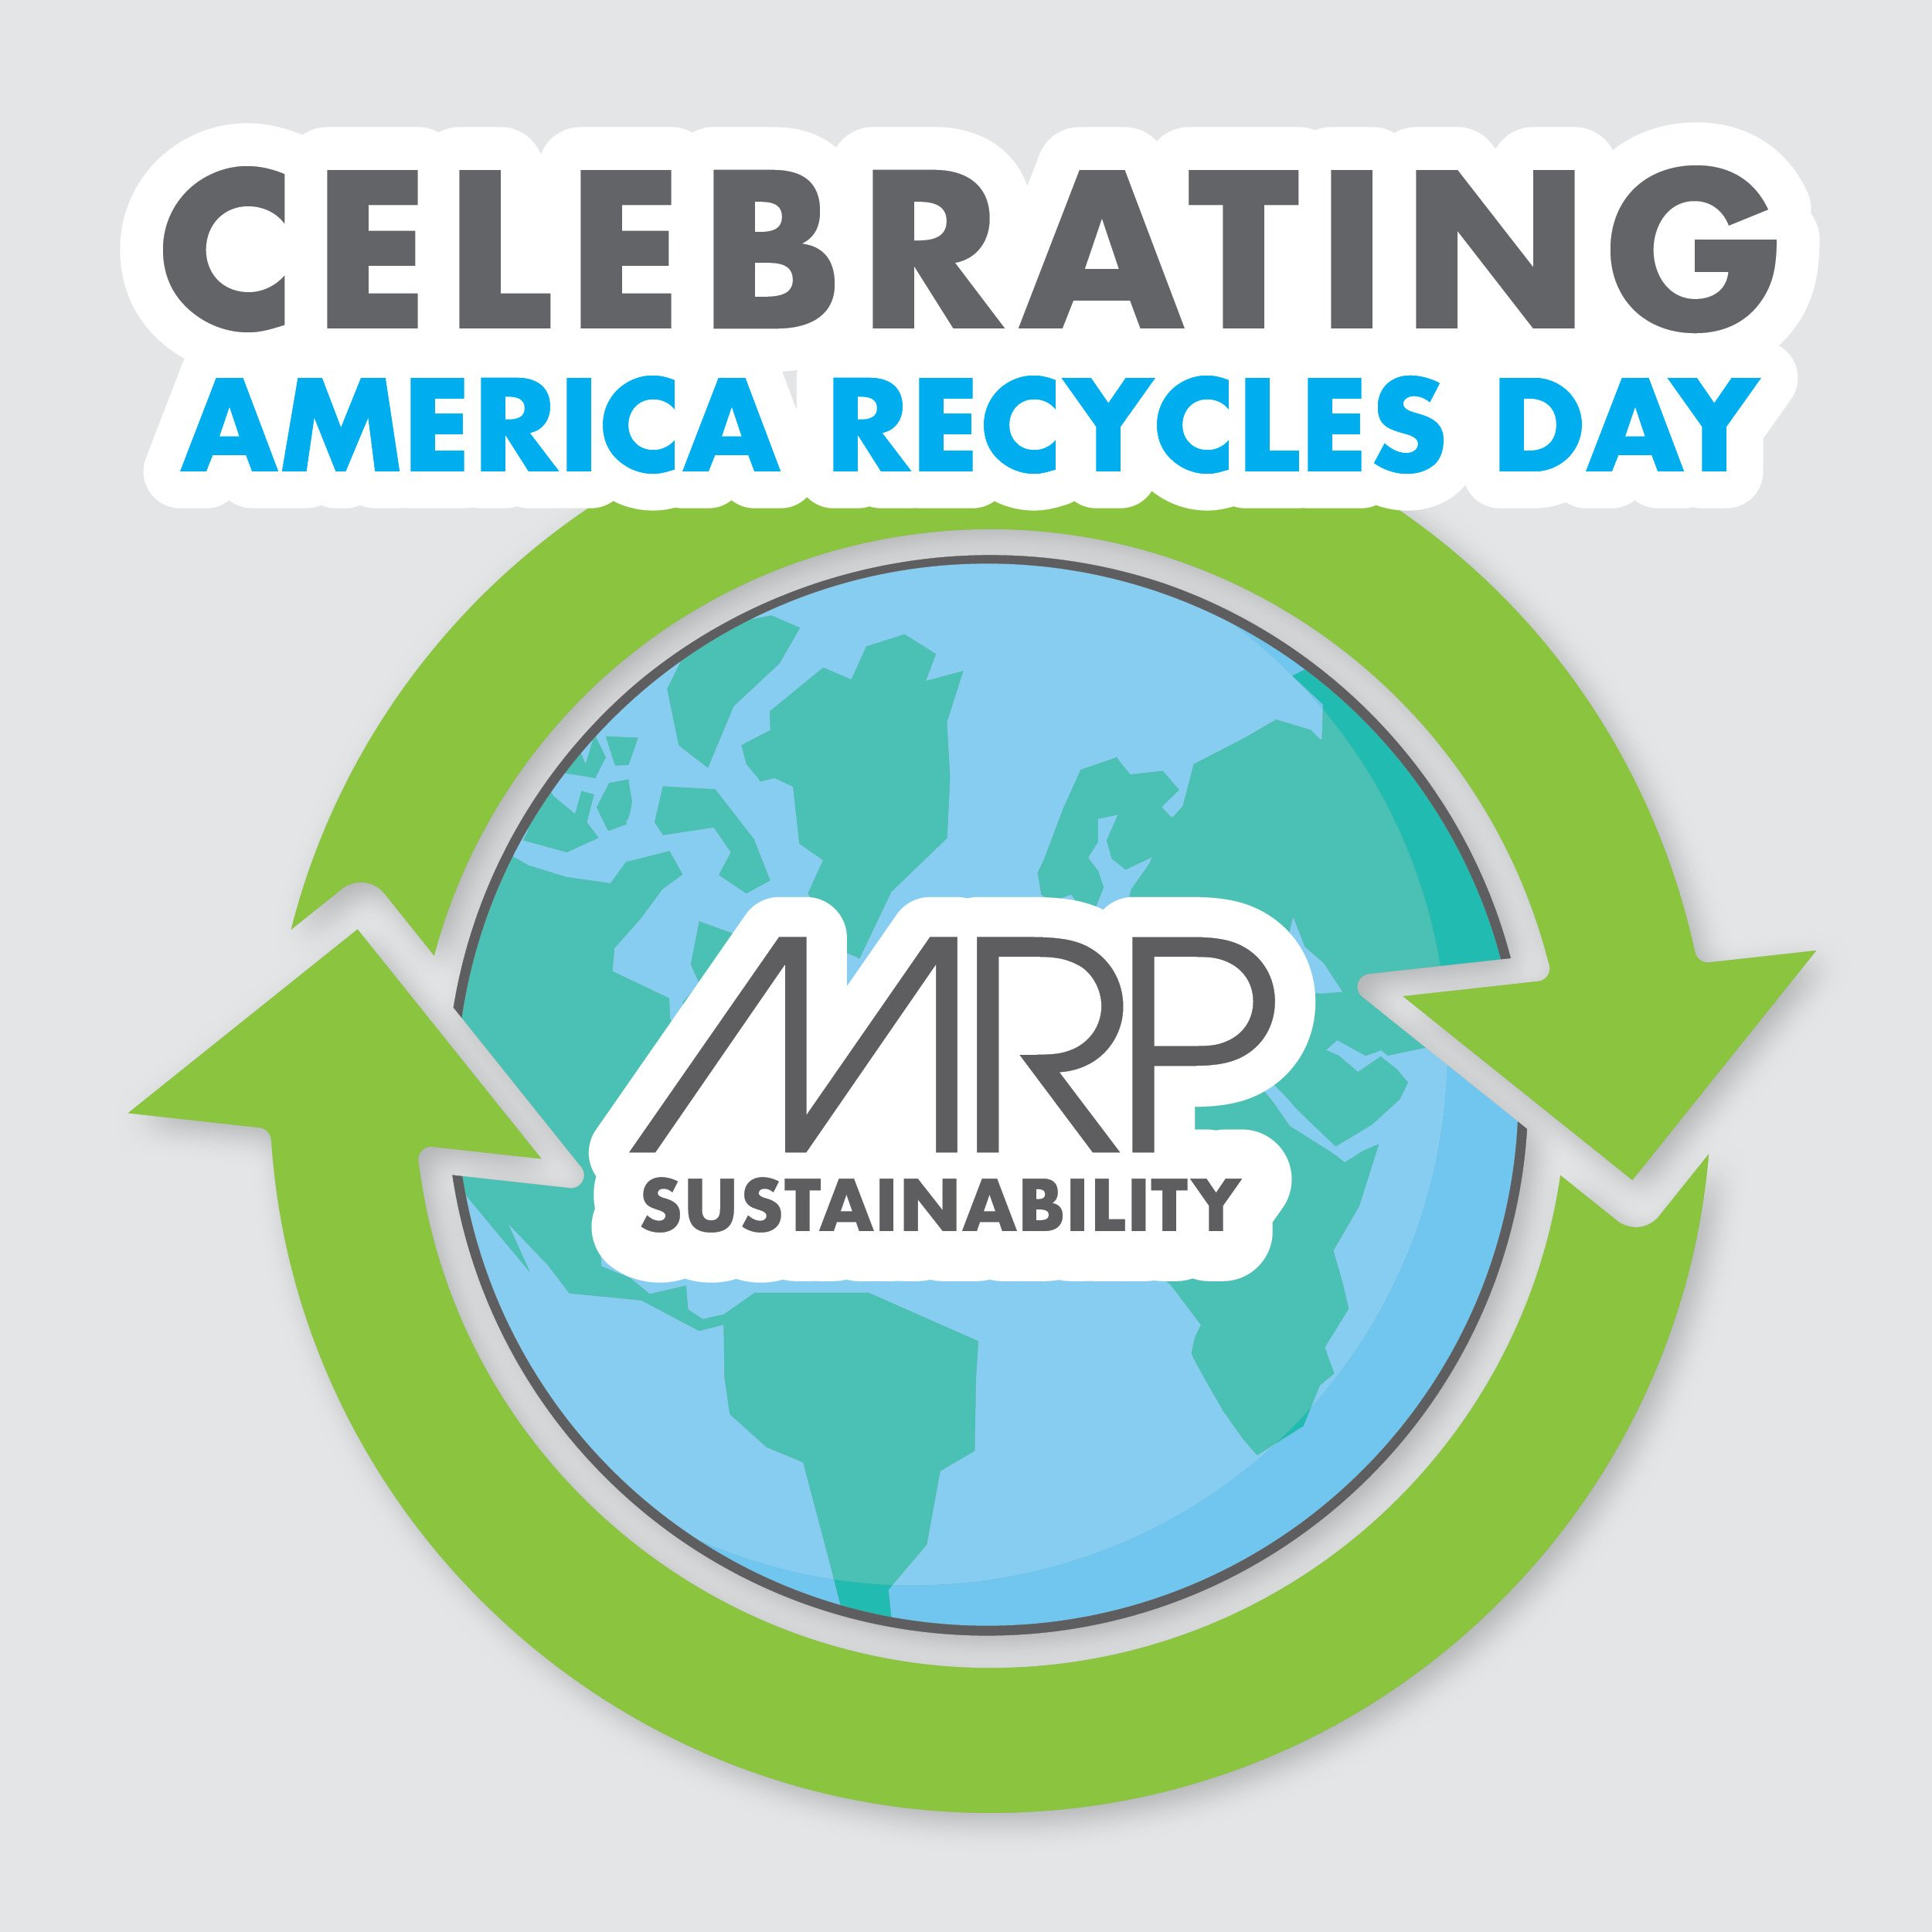 Celebrating America Recycles Day with MRP